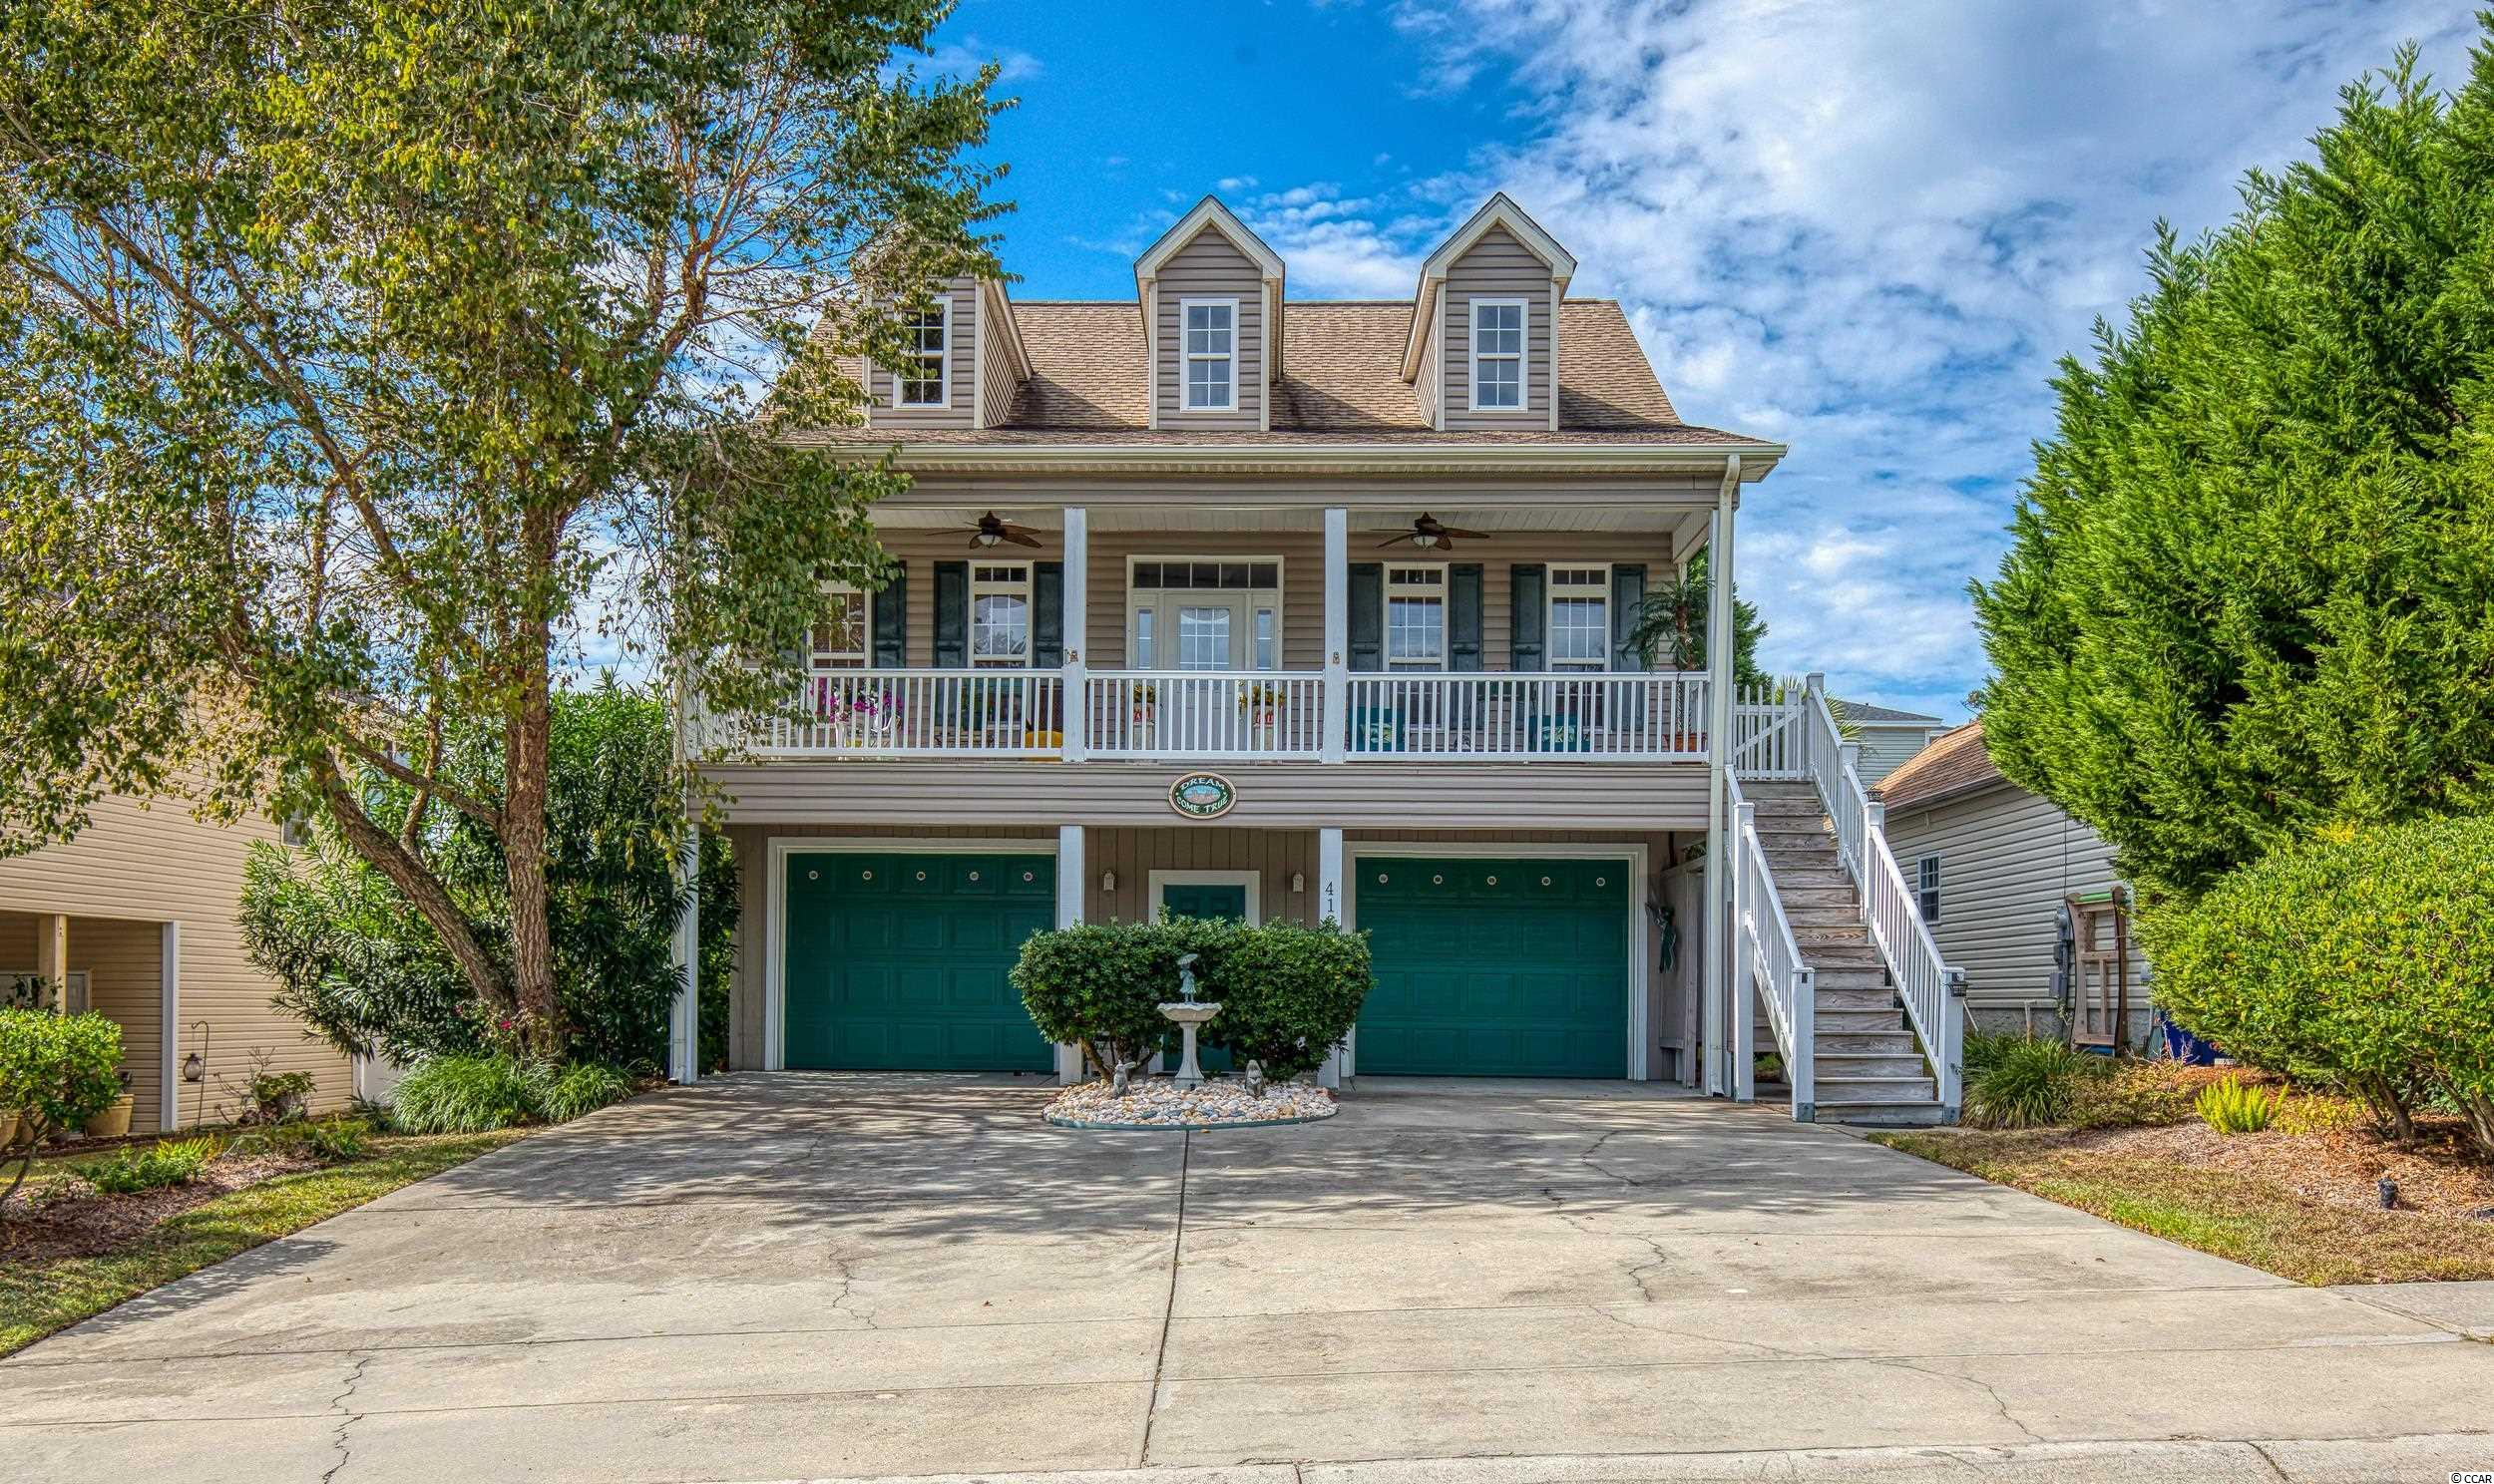 413 5th Ave. S North Myrtle Beach, SC 29582